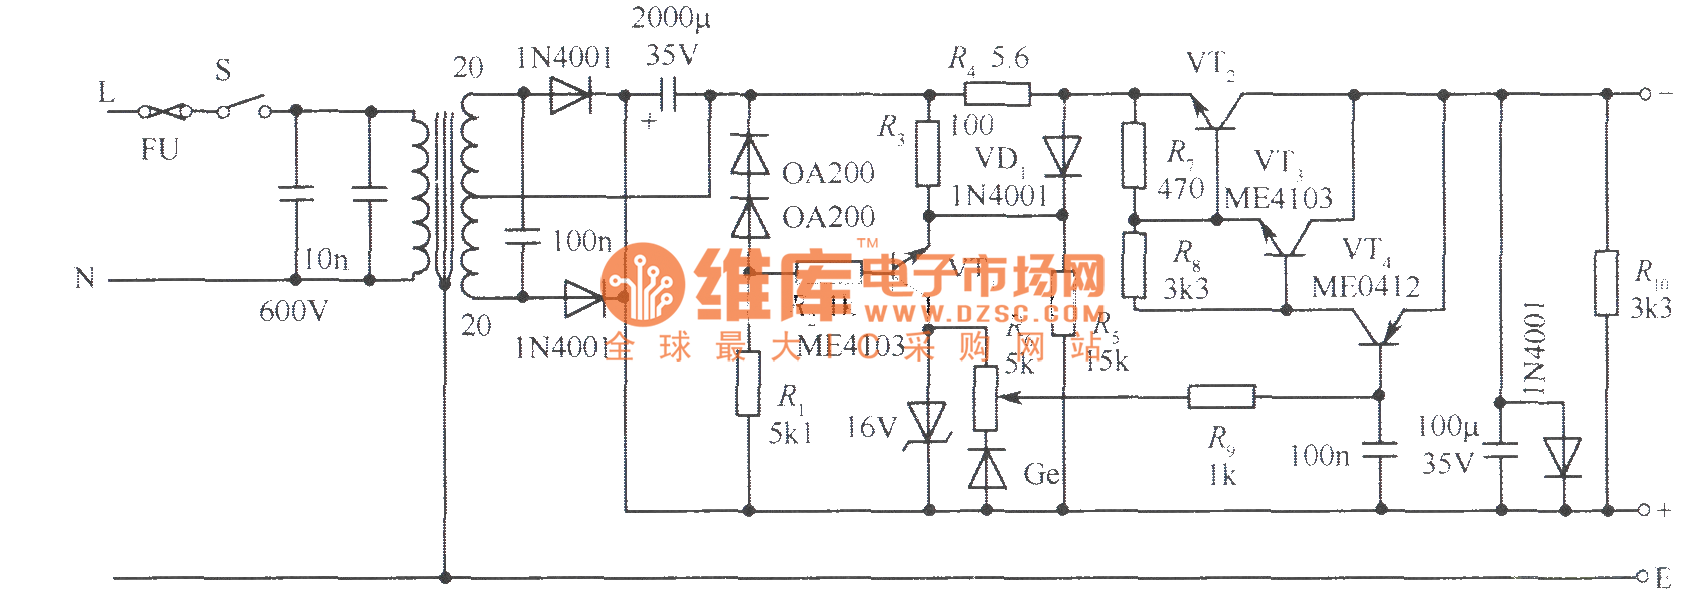 Limiter Powersupplycircuit Circuit Diagram Seekiccom Wiring Regulated Power Supply Audio 015v With Current Limiting